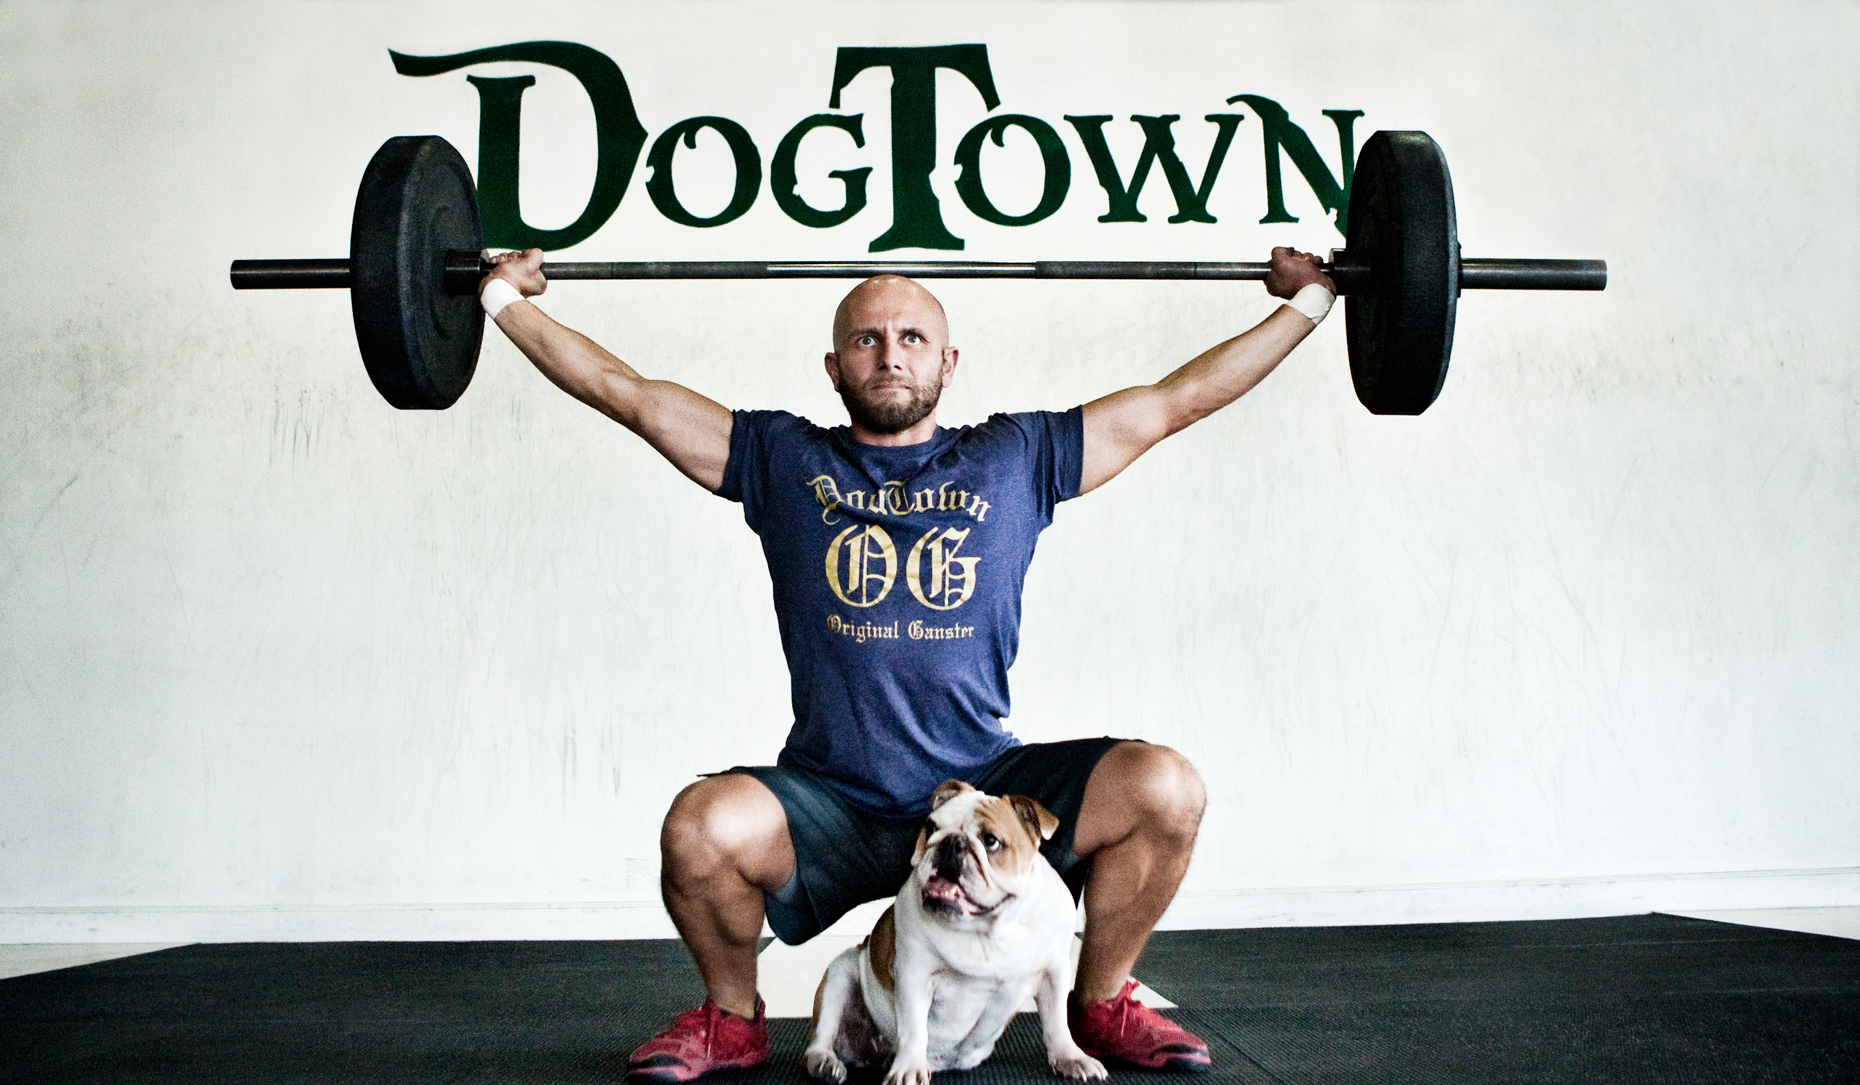 Crossfit, LA Dog Photography, Michael Brian, Los Angeles, Sports, Bulldogs and barbells, Josh Gallegos overhead squatting at Dogtown Crossfit